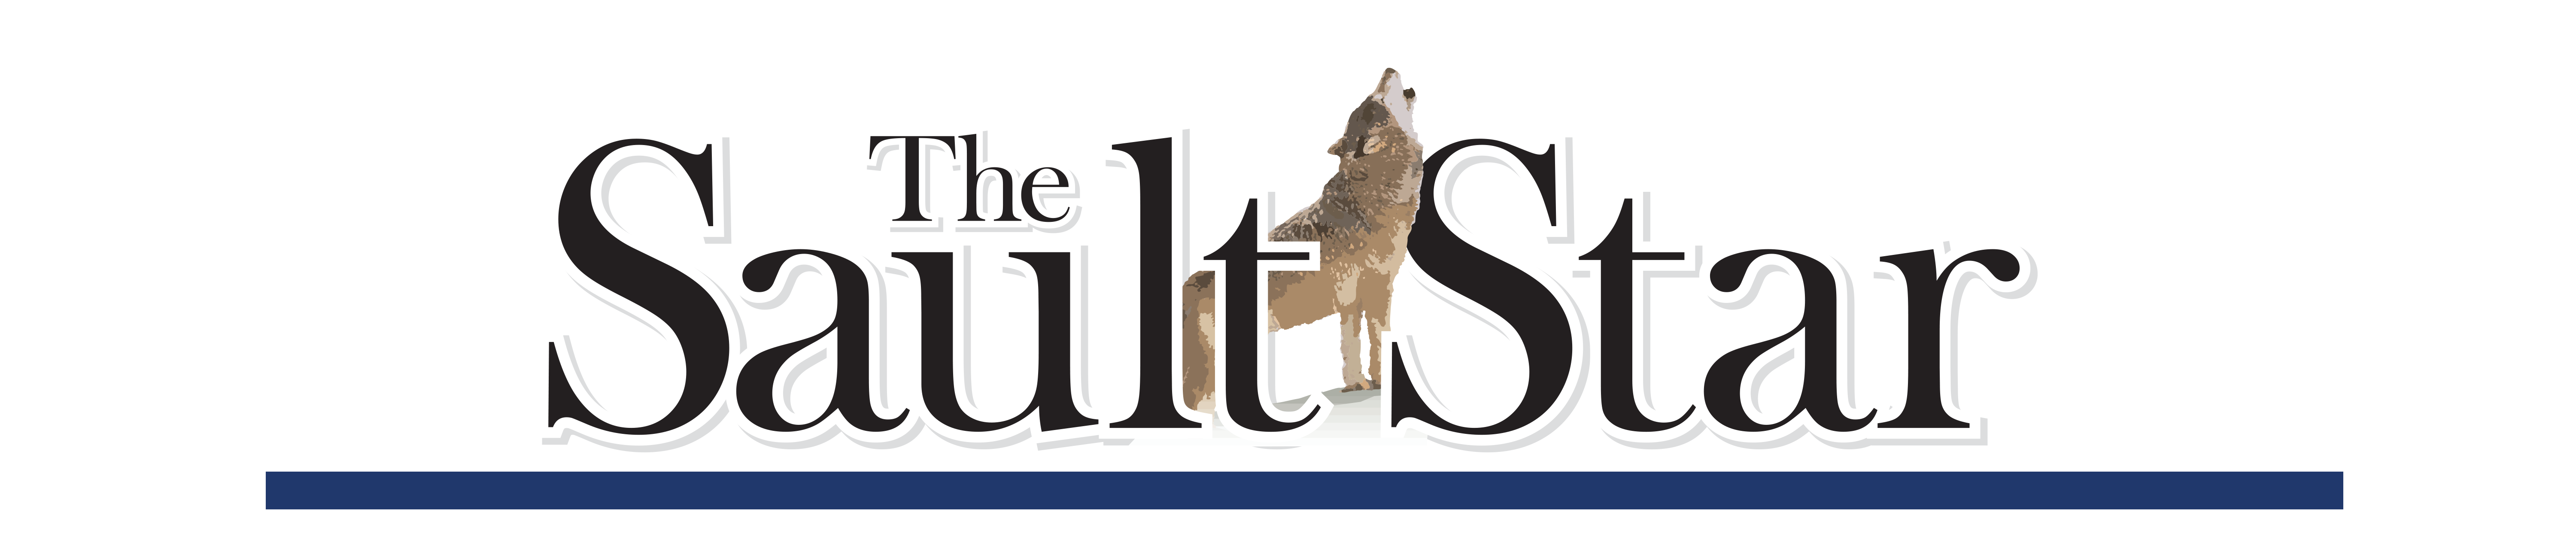 The Sault Star – Surreal Graphics